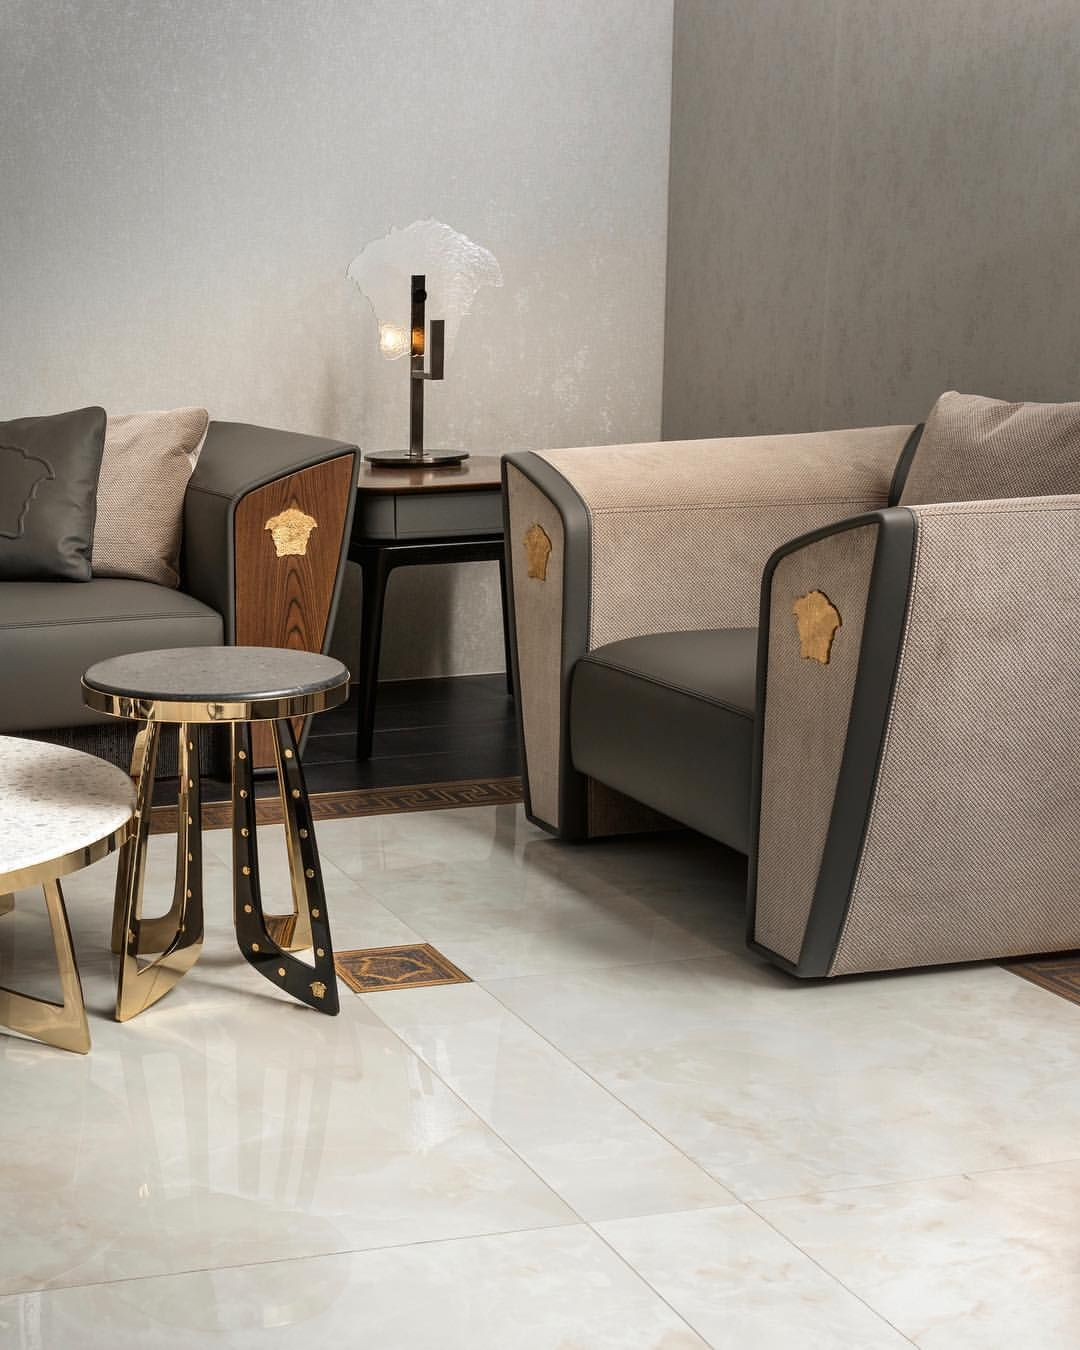 The VM11 Home Furnishing Line Named After The Versace Flagship Boutique In Via Montenapoleone … | Luxury Furniture Sofa, Living Room Sofa Design, Luxury Sofa Design